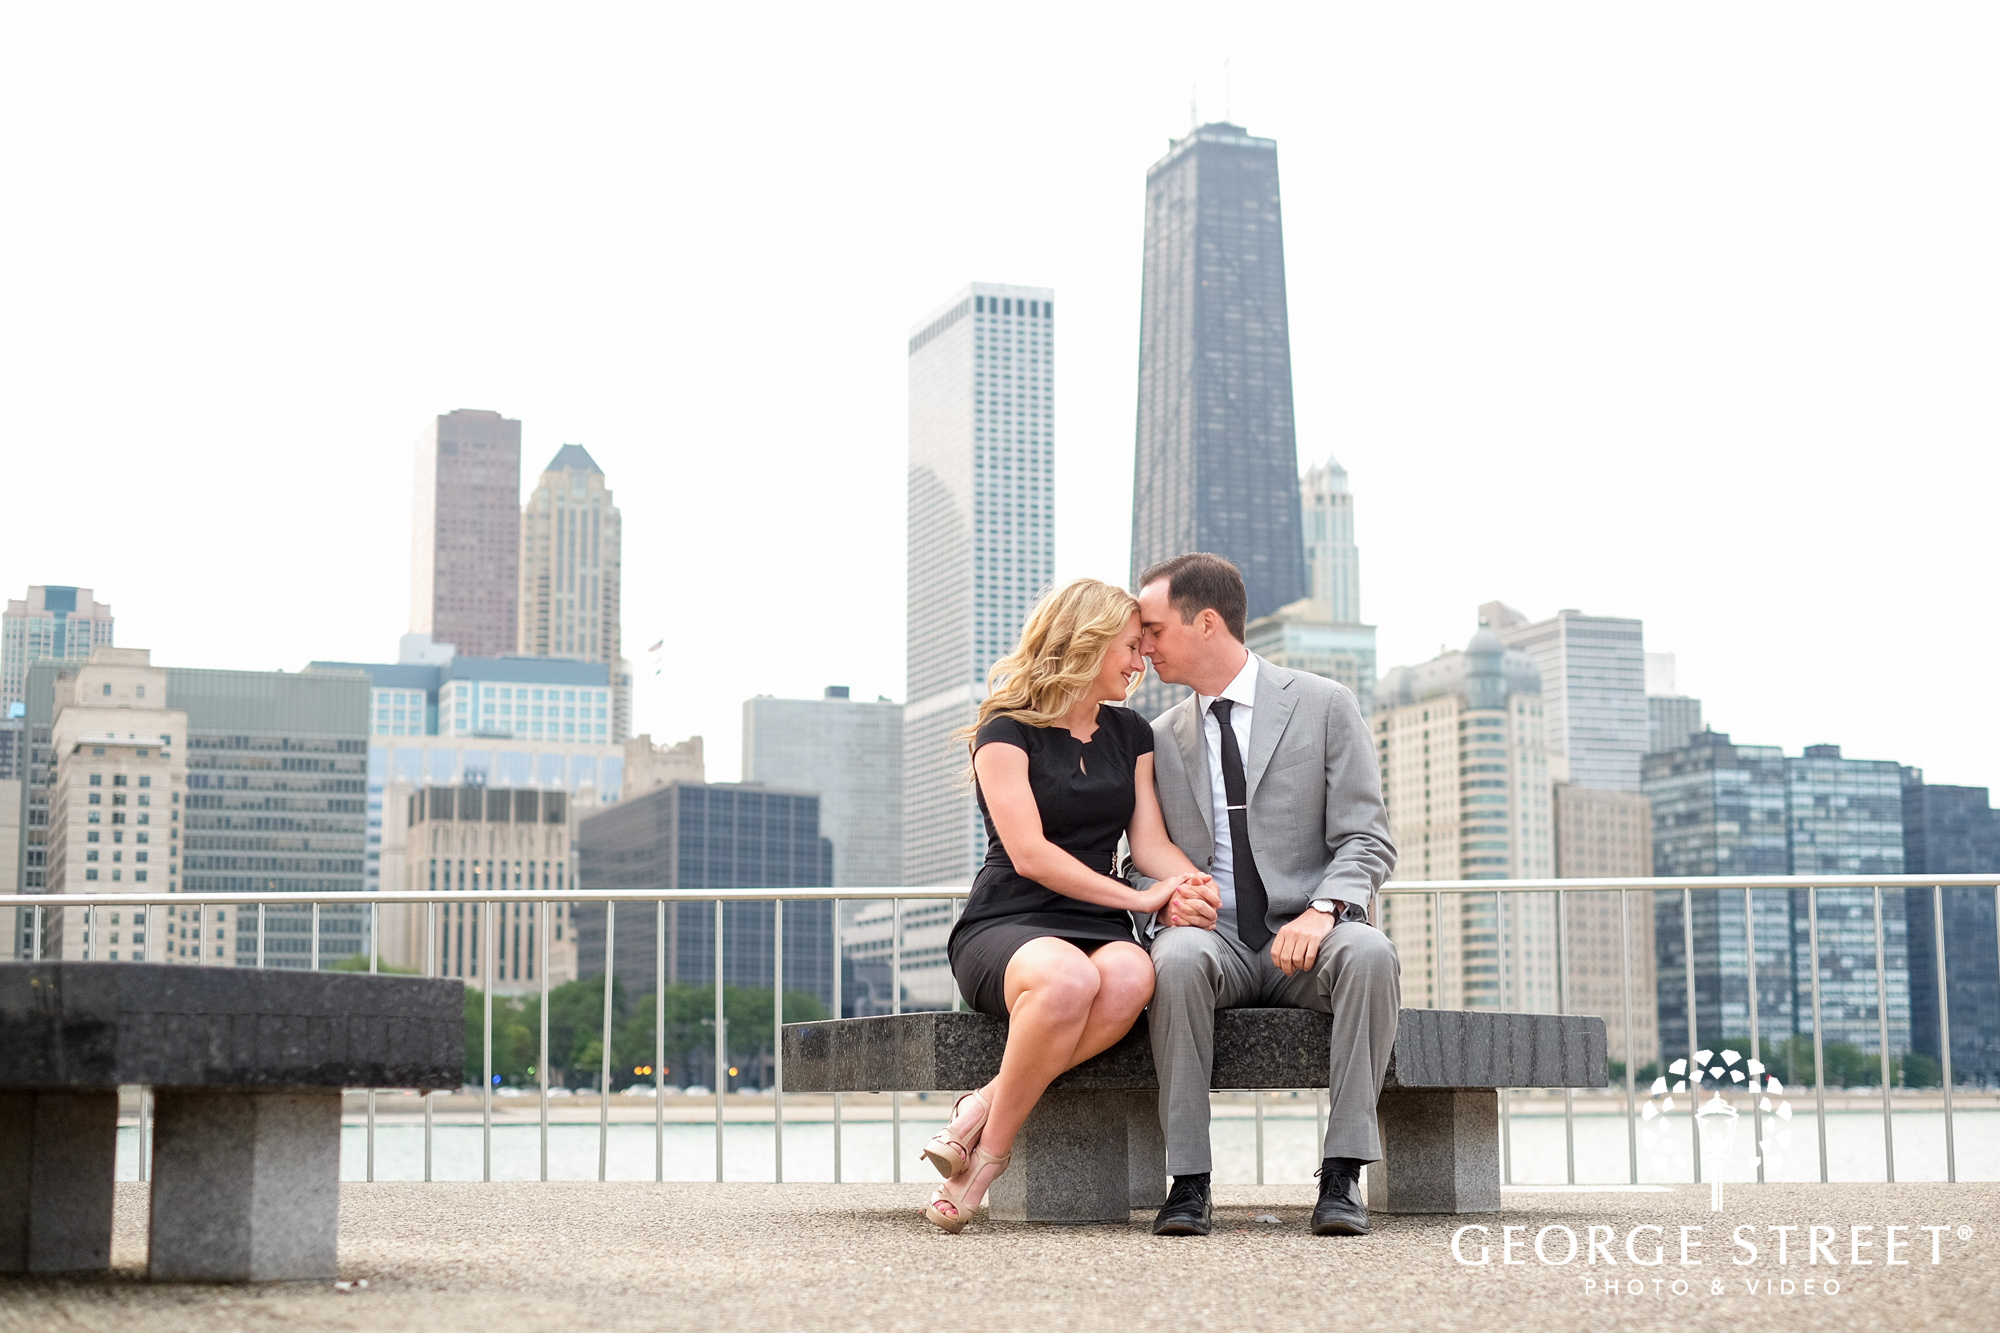 George Street's Top 10 Engagement Session Locations in Chicago